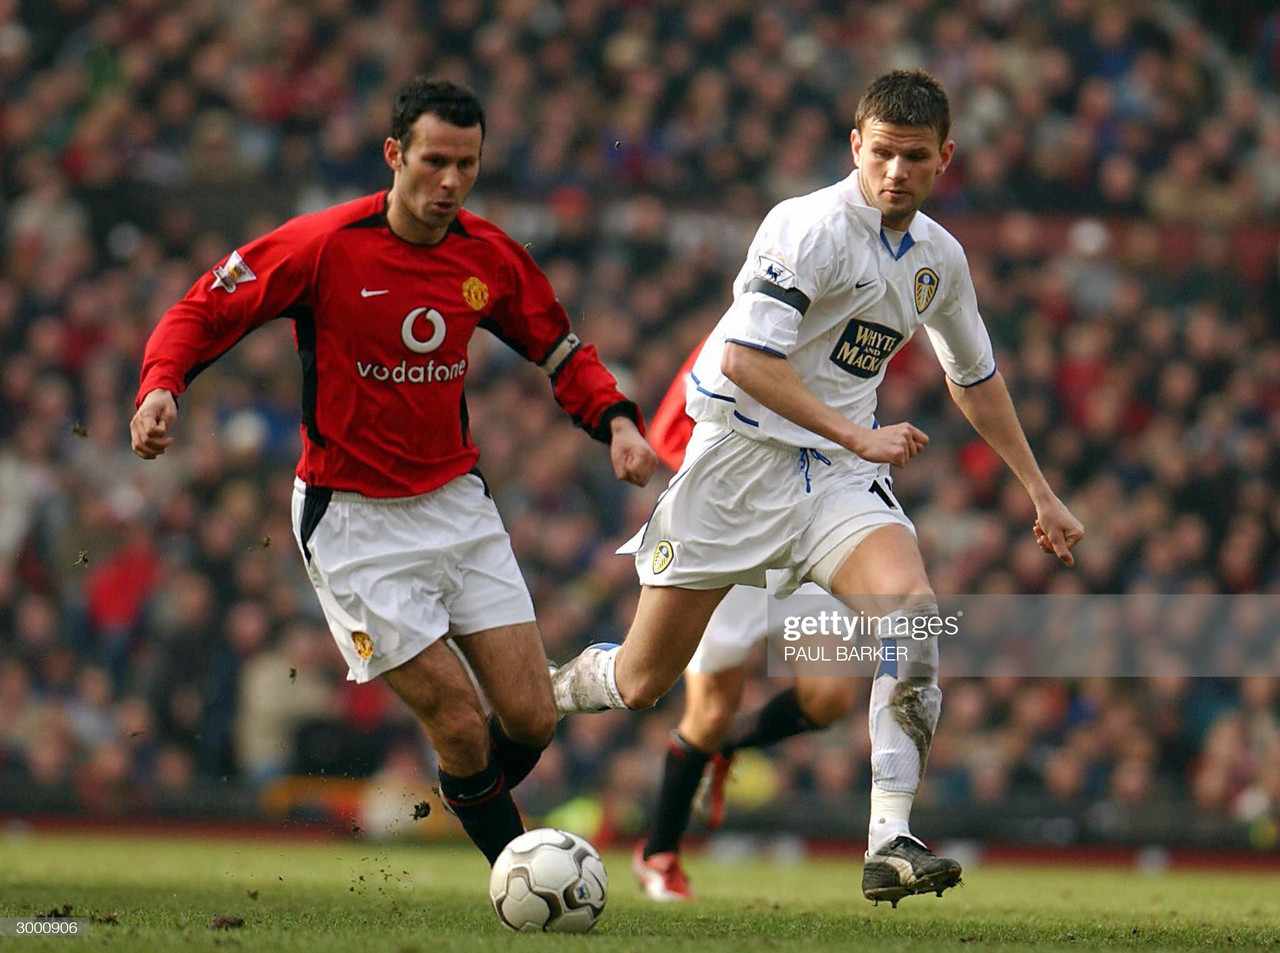 A brief history of the Manchester United-Leeds United rivalry and what happened when they last met in the Premier League